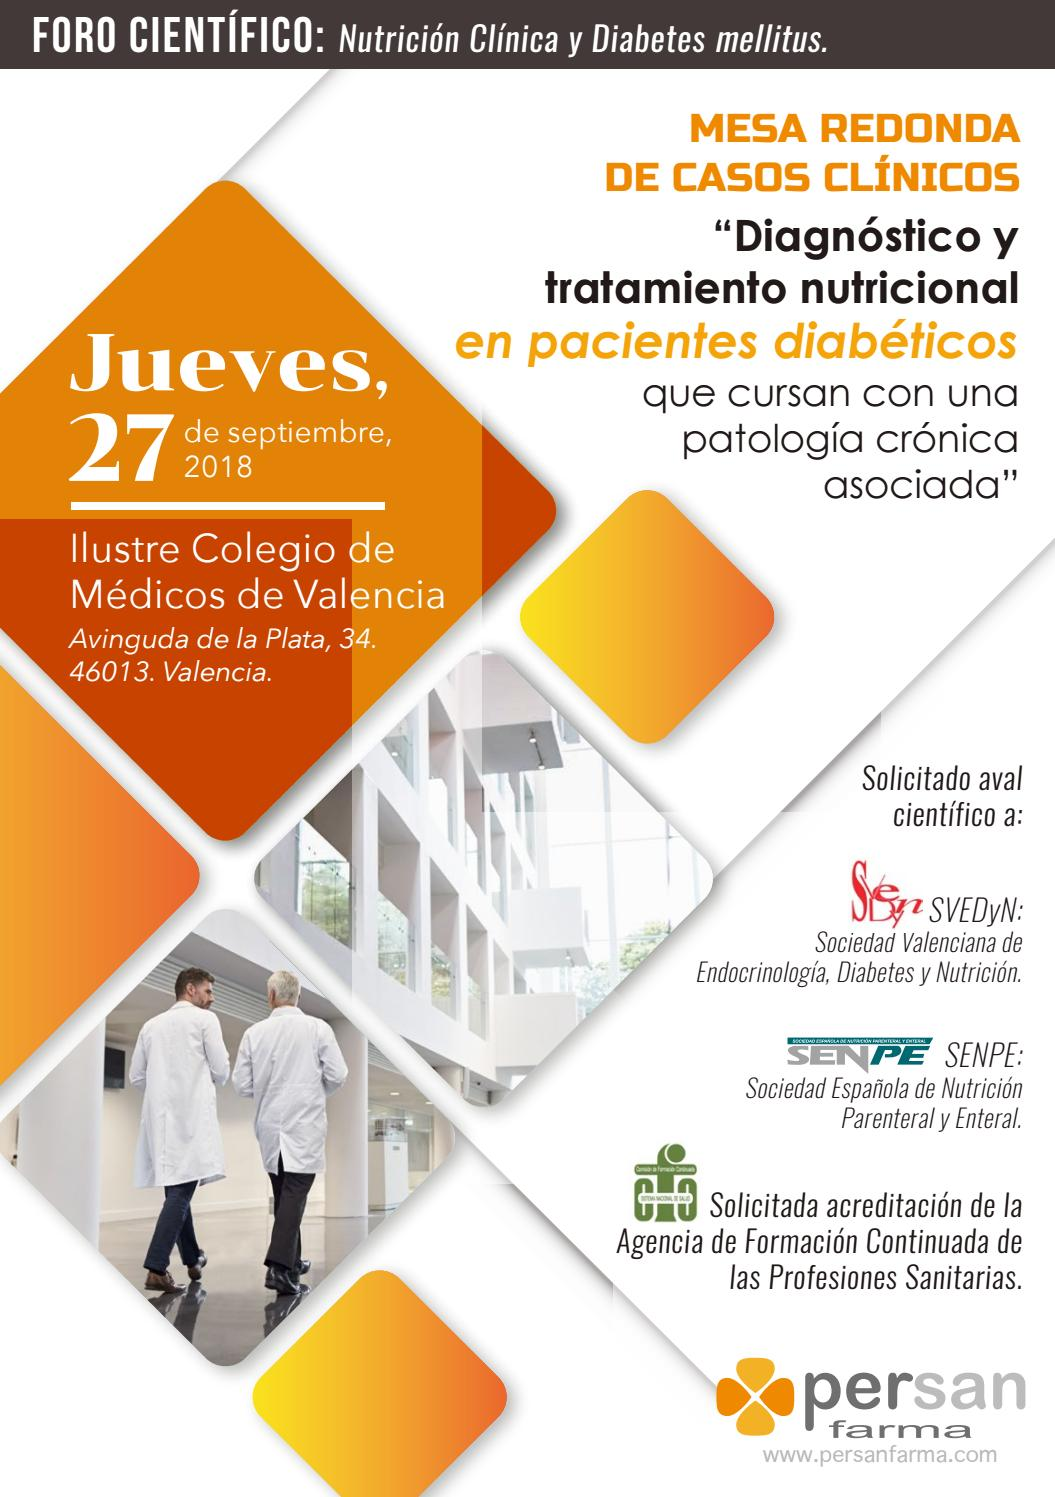 endocrinología parental y diabetes